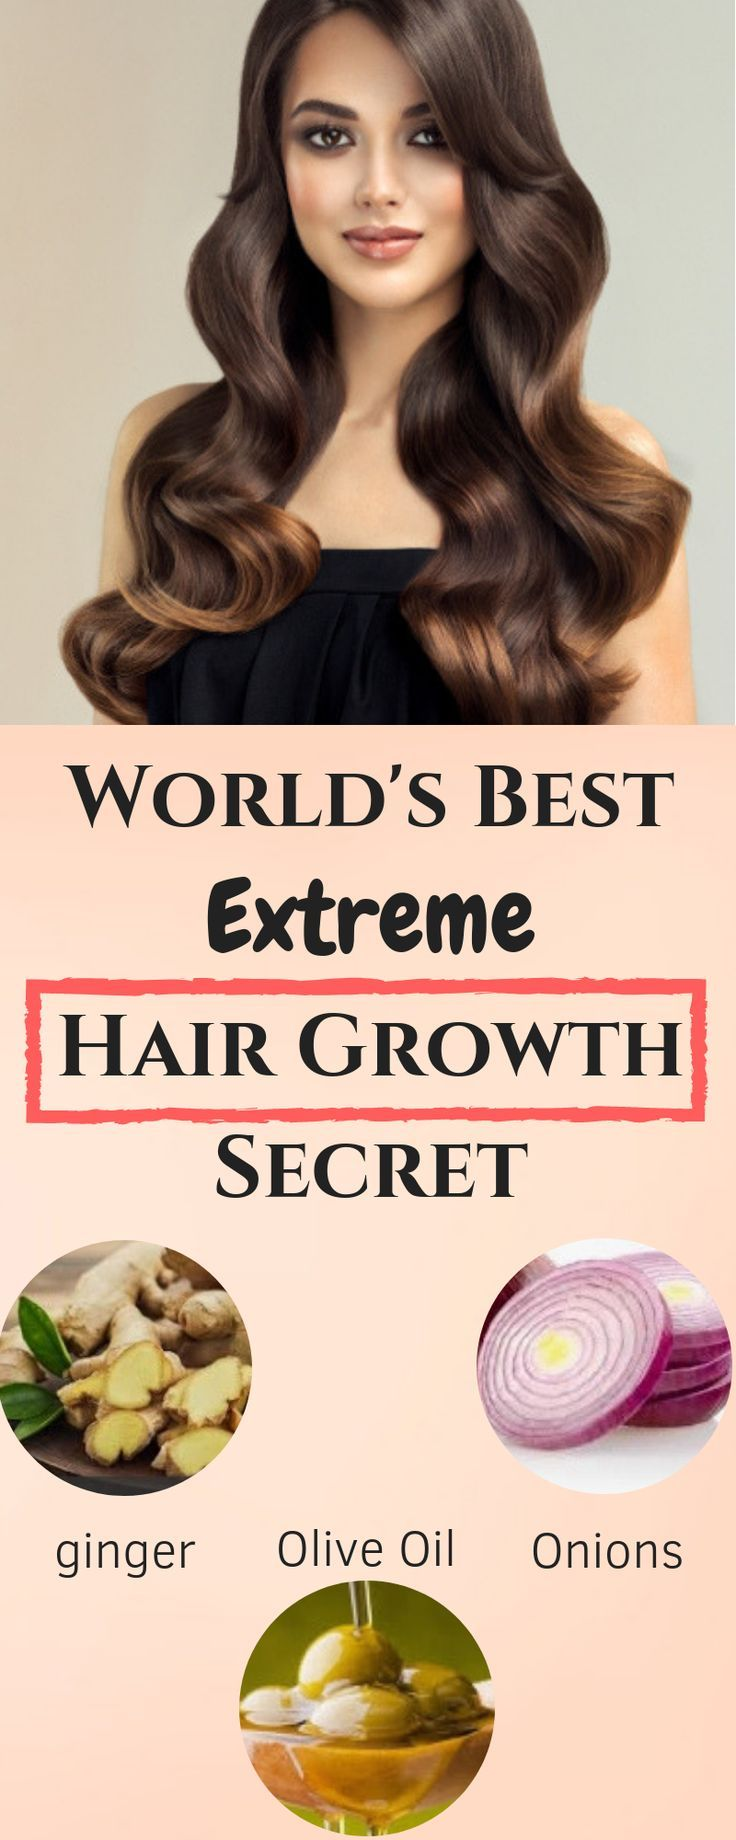 Vitamins for Hair Growth} and World's best extreme hair growth remedy #haircare #hair #hairgrowth #haircaretip...